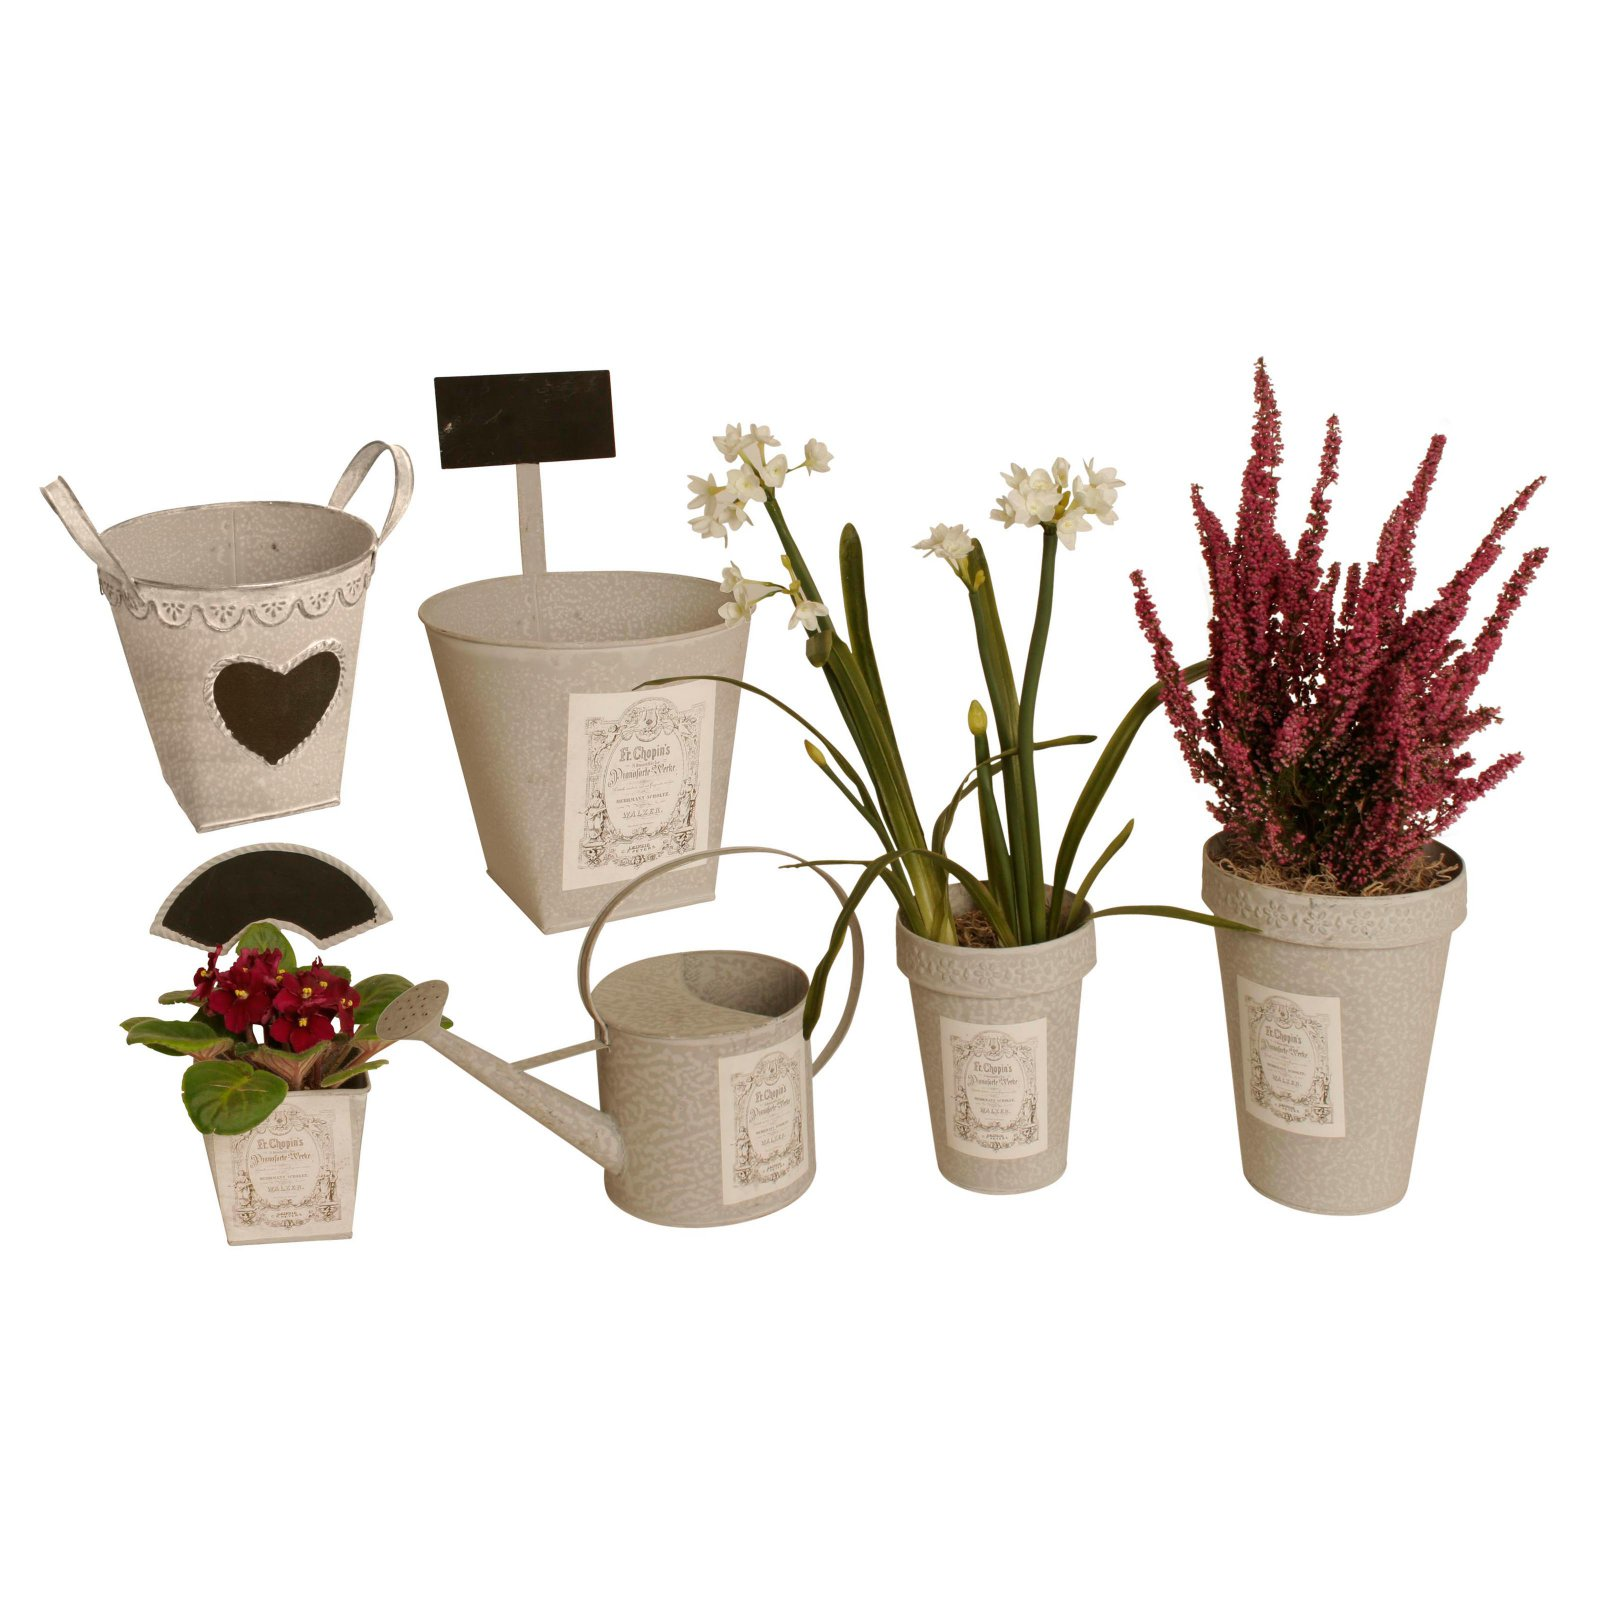 Wald Imports Assorted Metal Planter - Set of 6